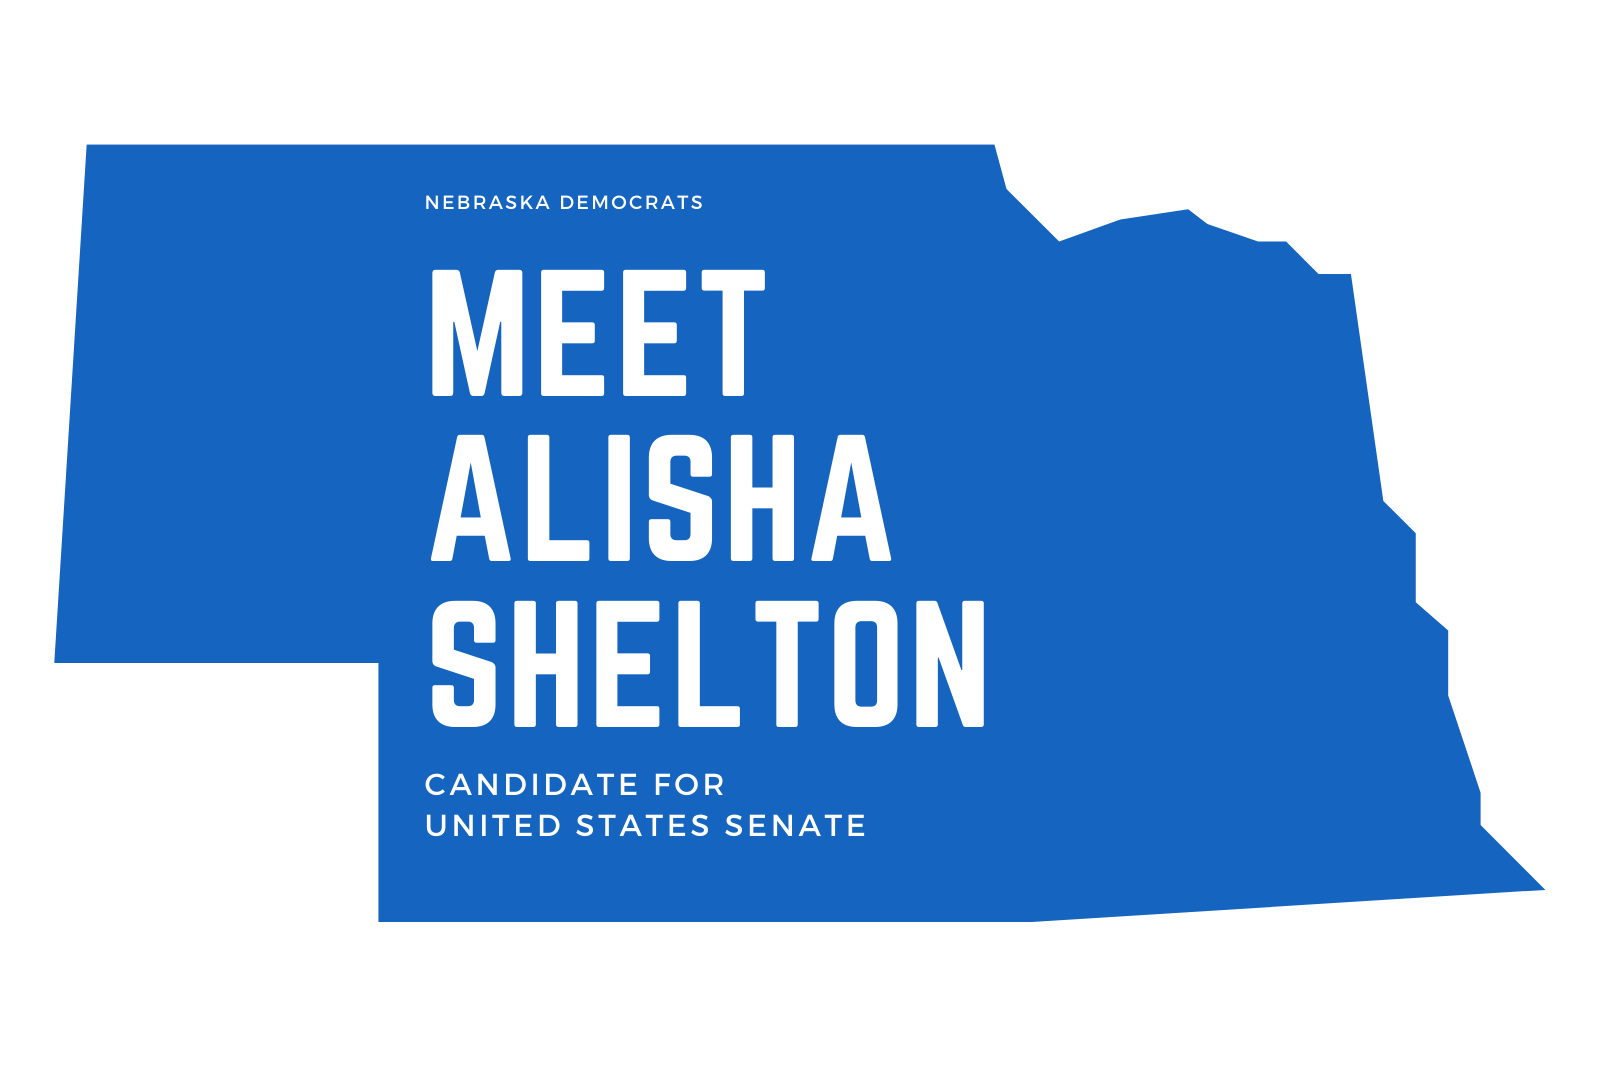 Meet Alisha Shelton, Candidate for U.S. Senate